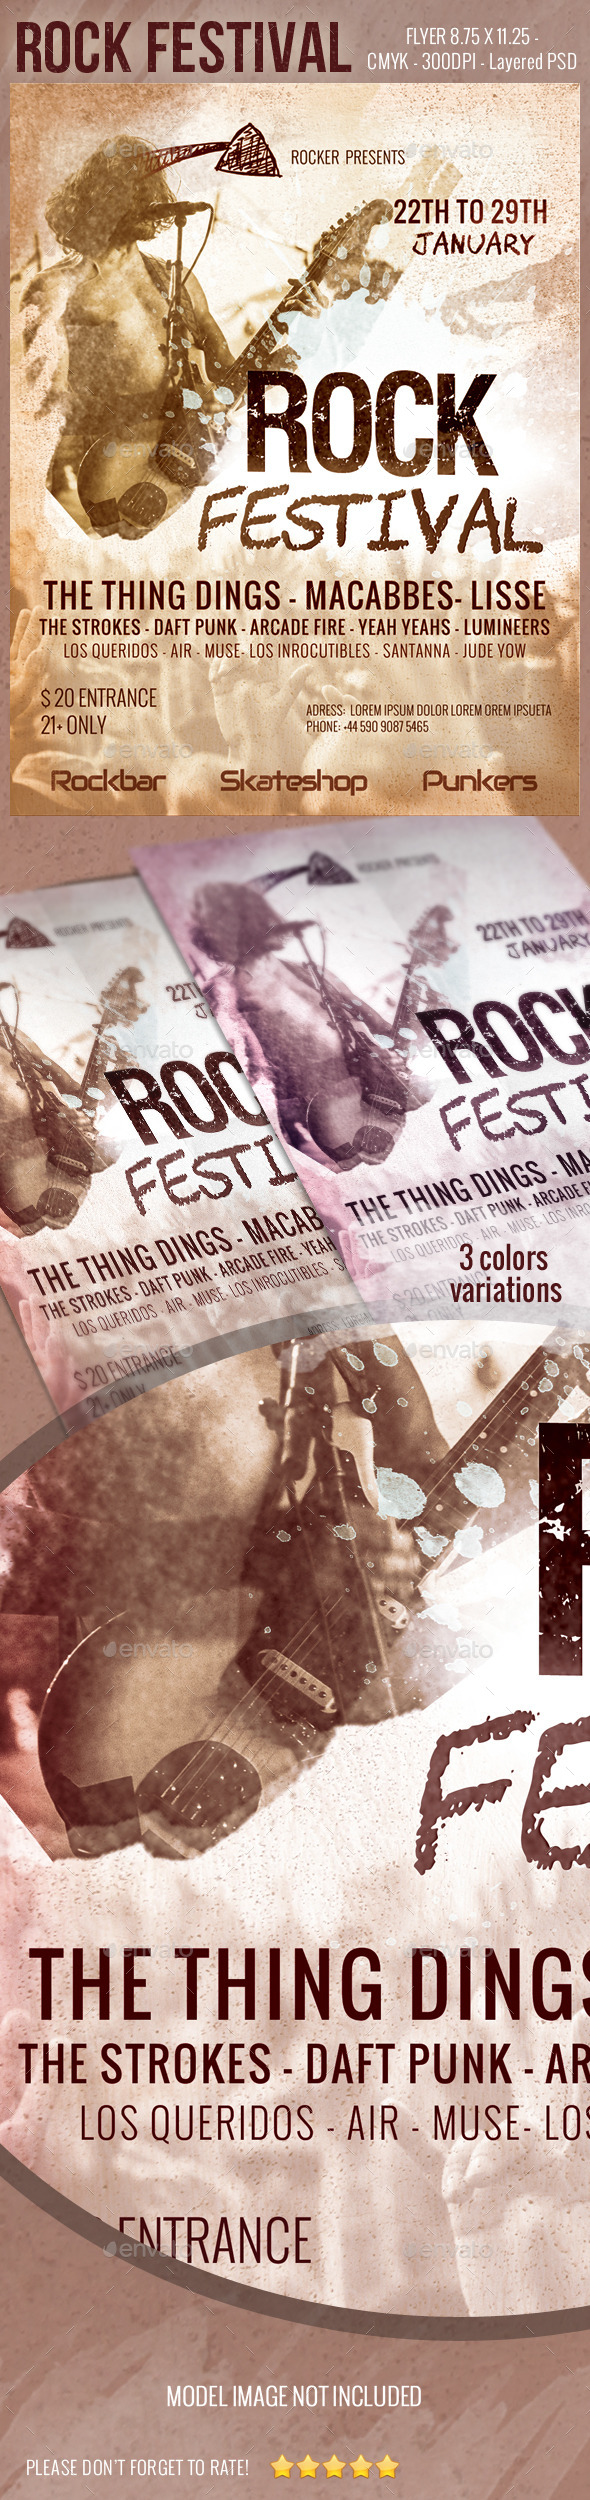 Rock Festival Flyer - Concerts Events